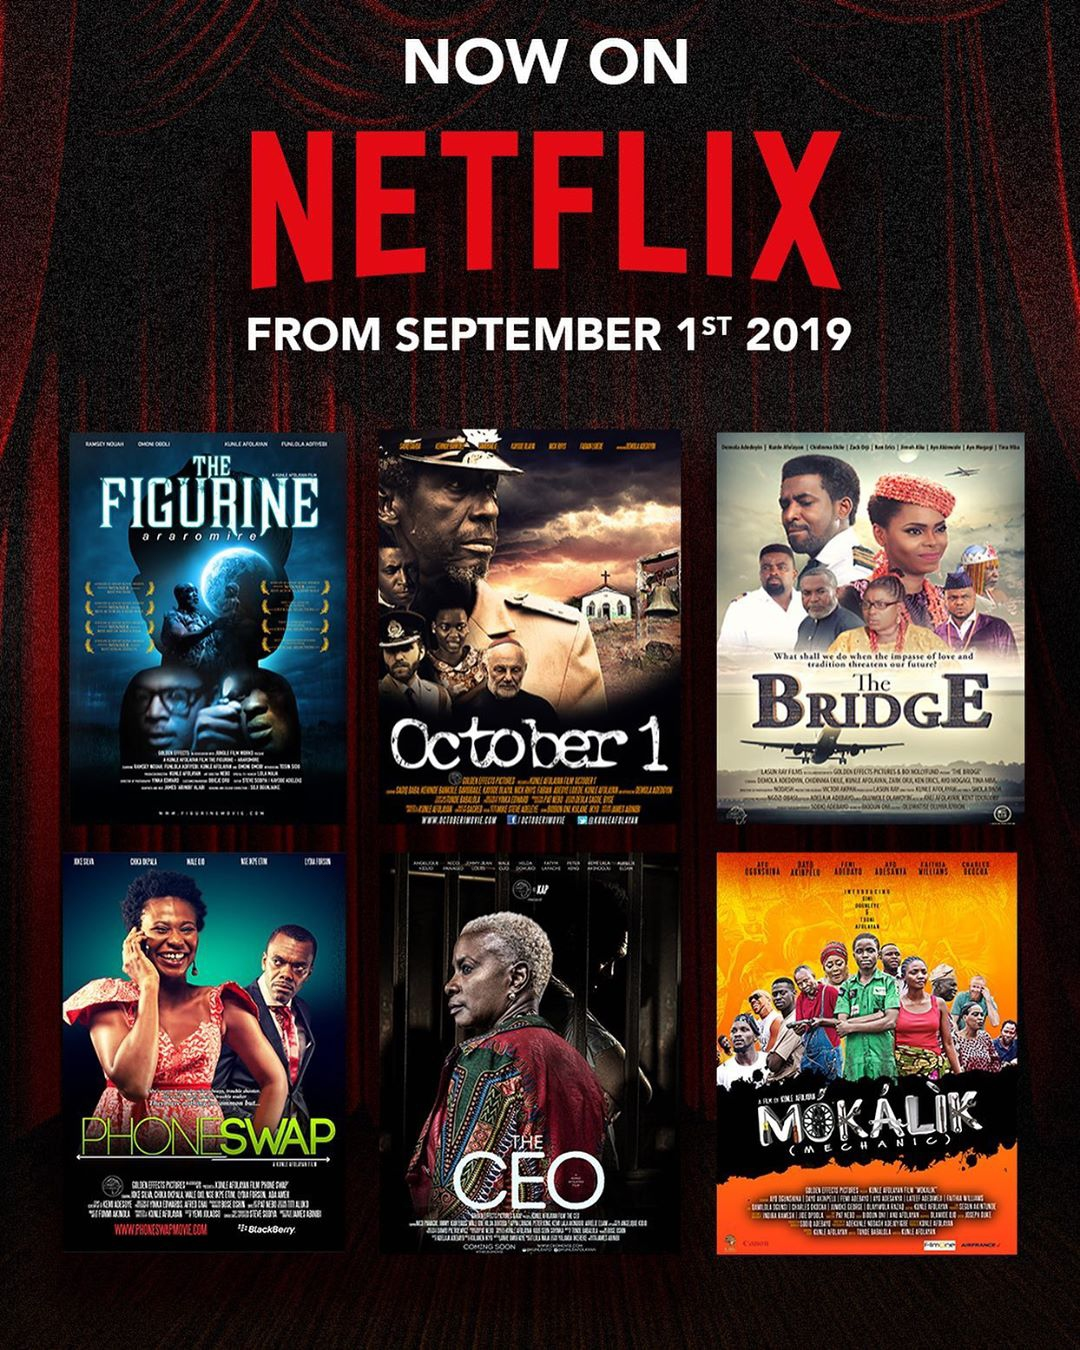 Kunle Afolayan announces his Movies are Now Streaming on Netflix